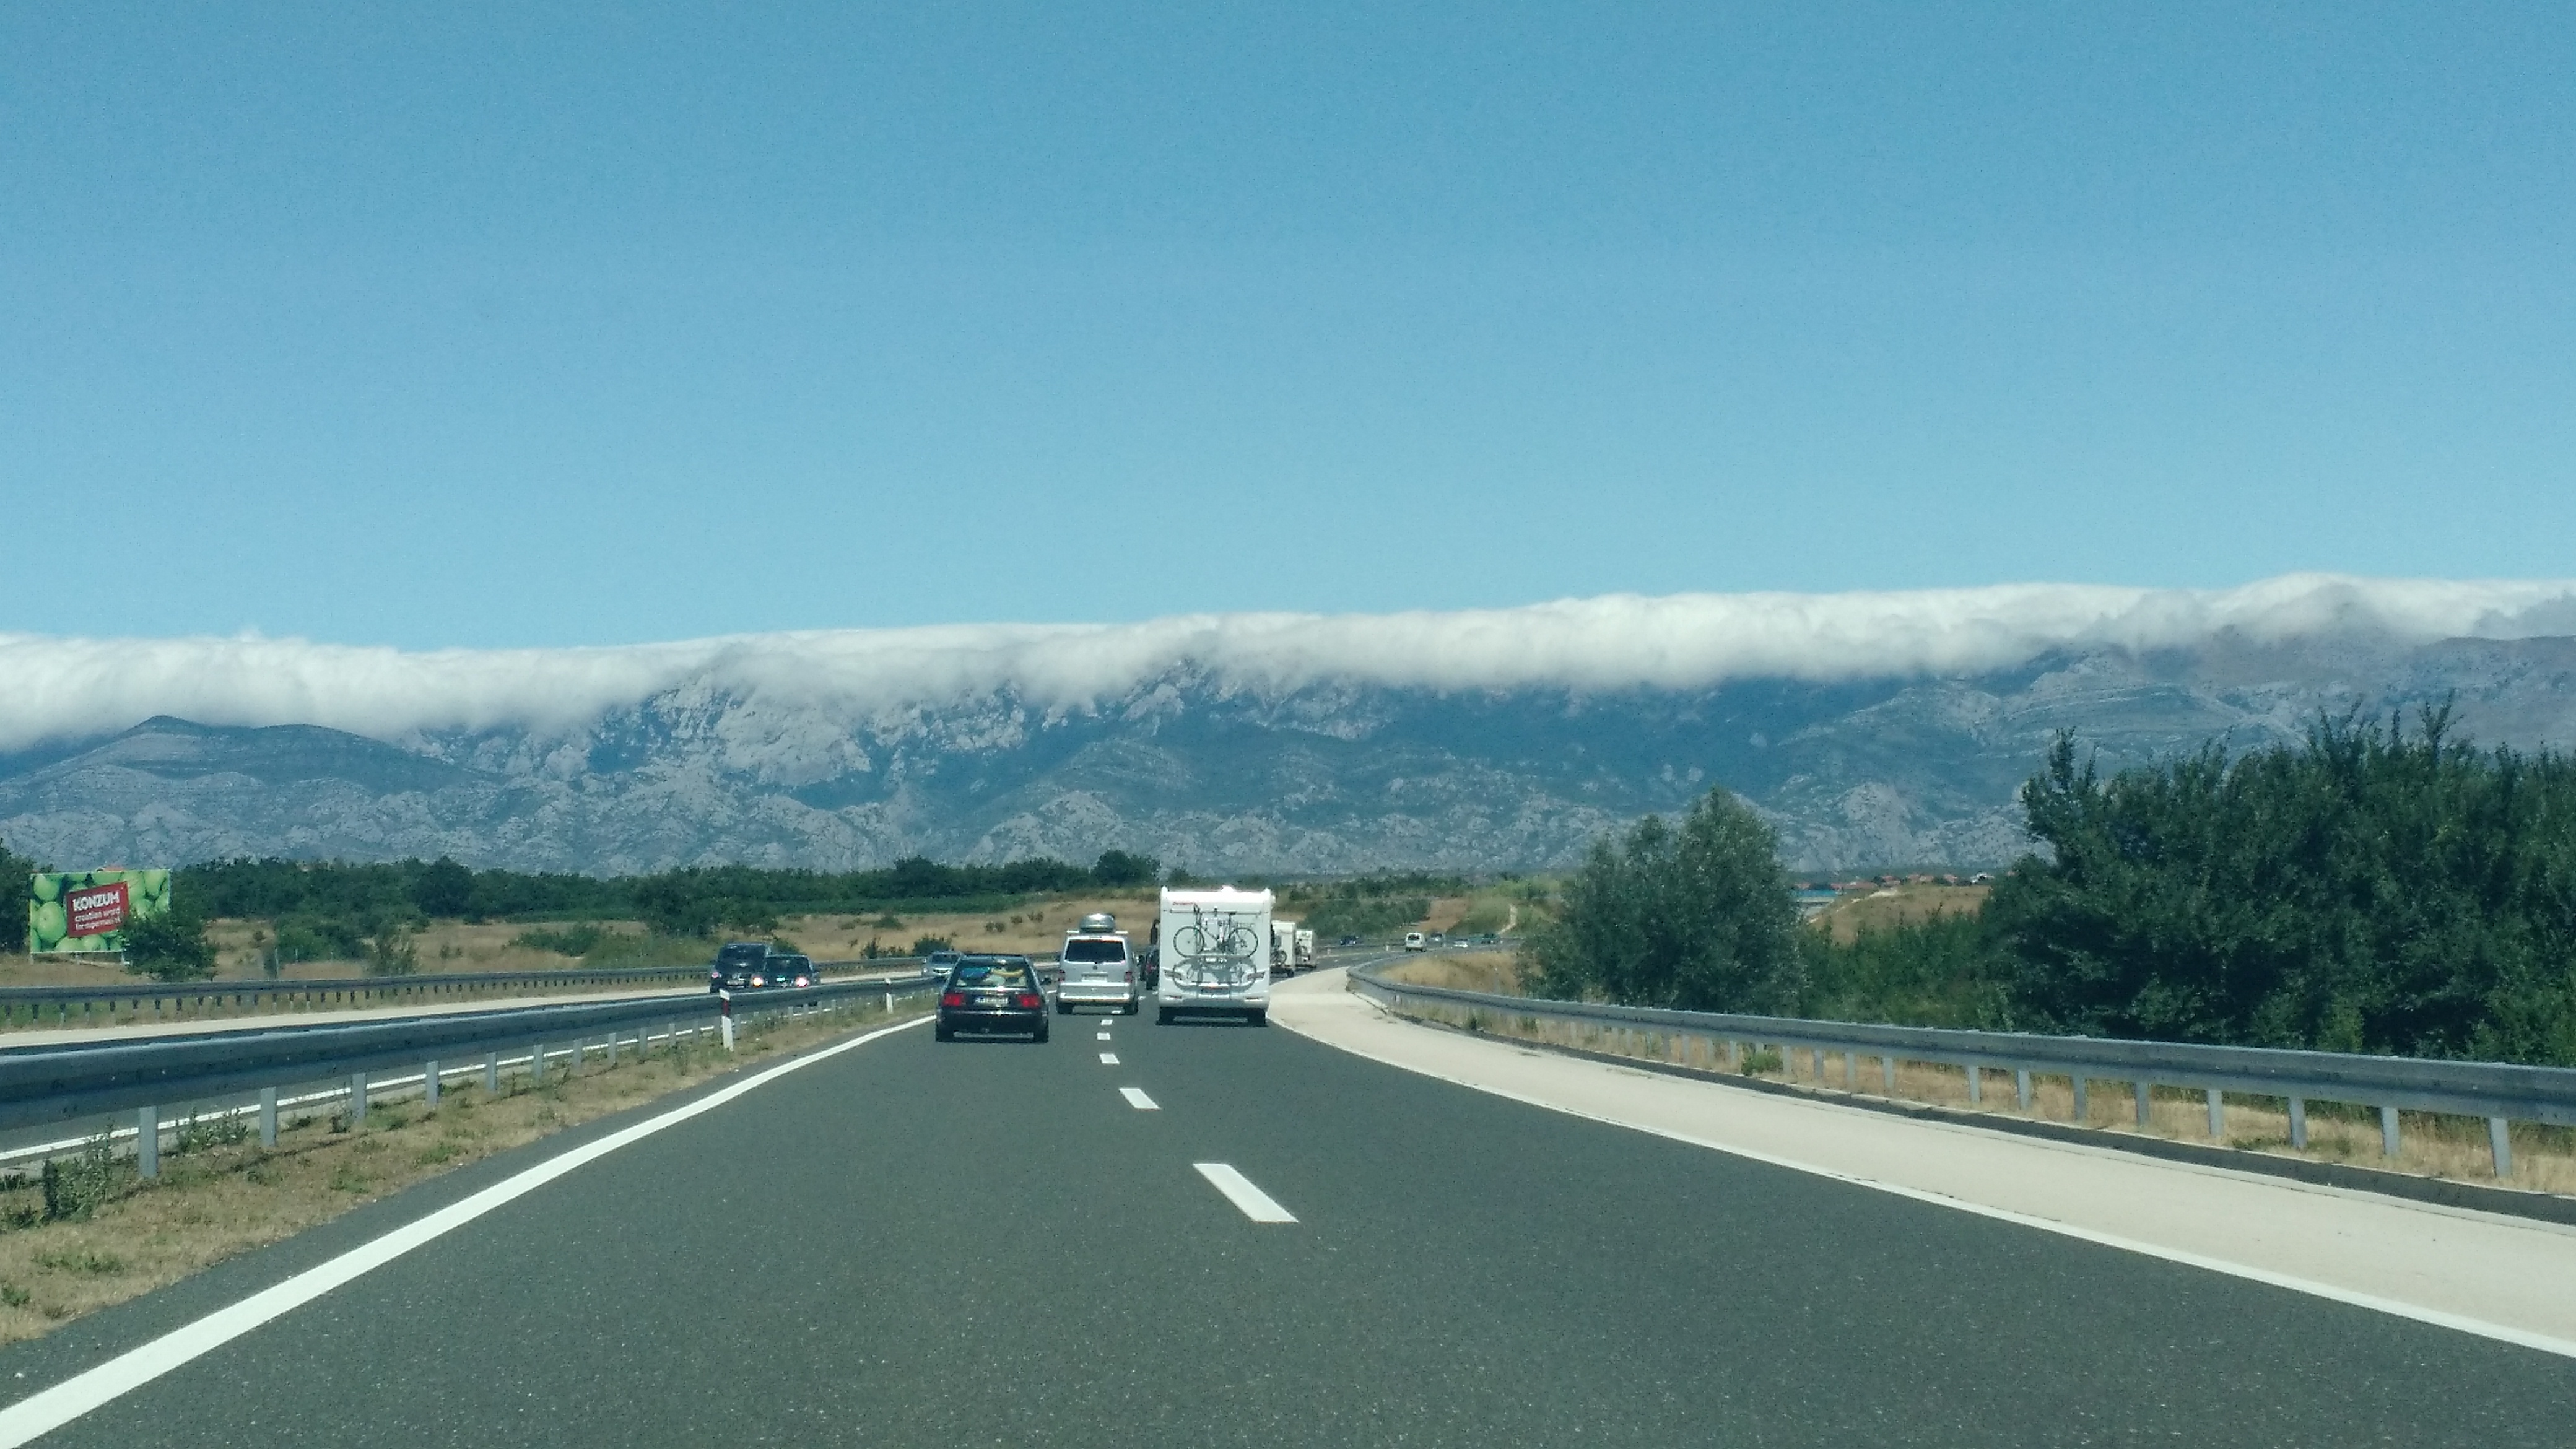 Clouds skimming the tops of mountains along the highway